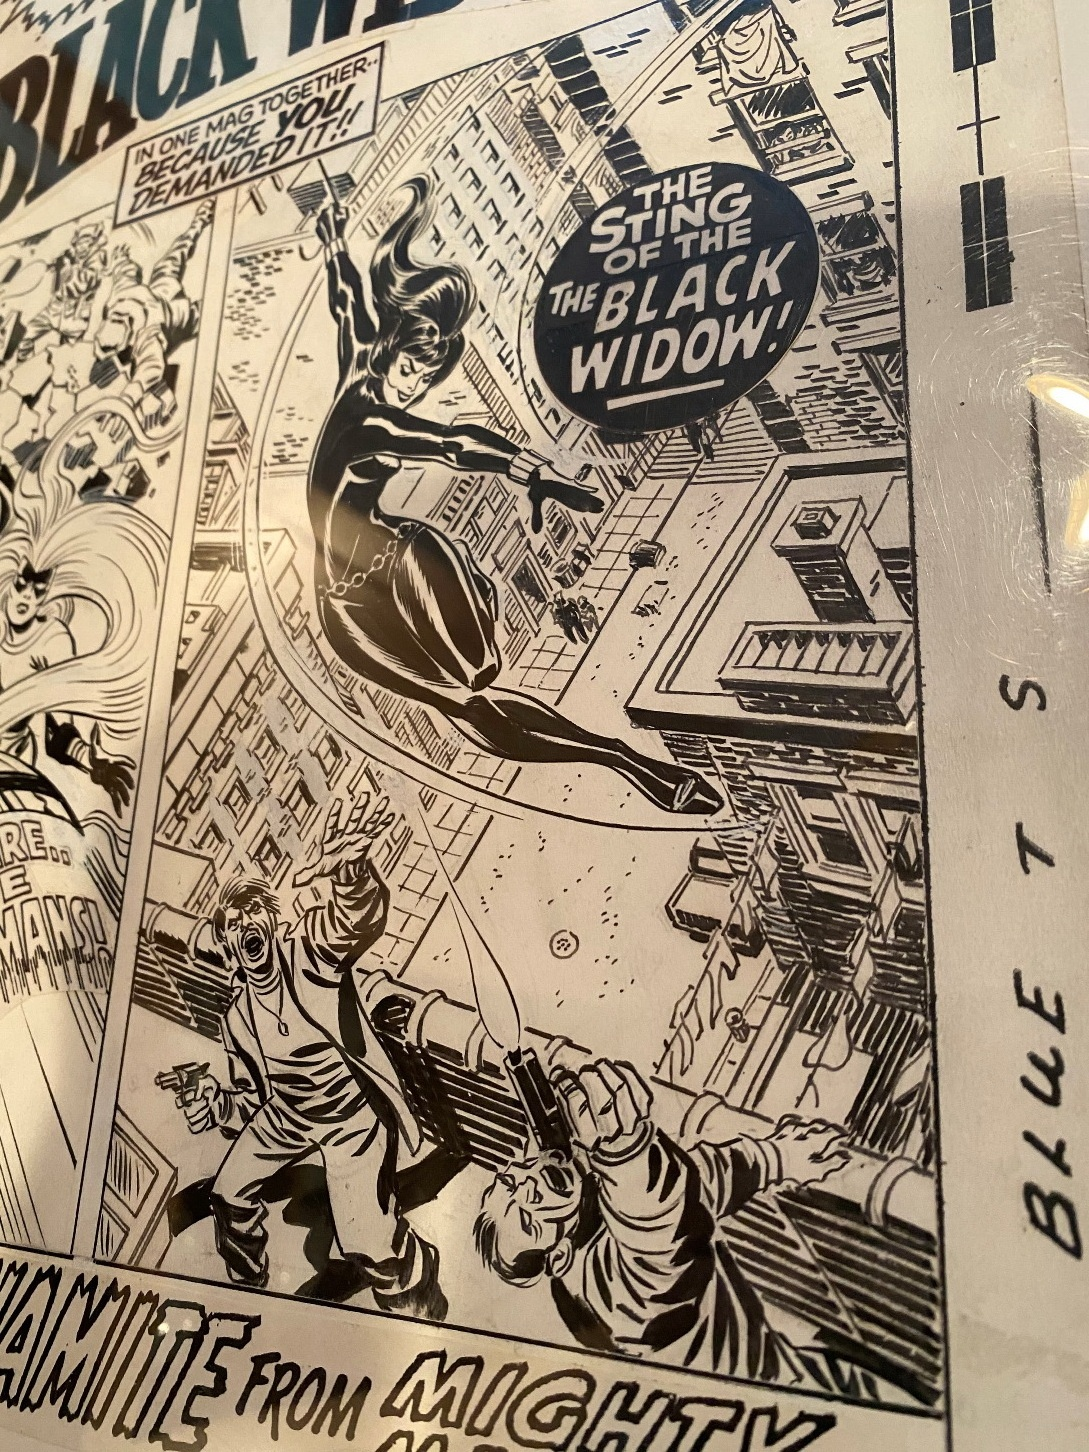 Shipping Valuable Comic Books to Chicago for the Upcoming Exhibit